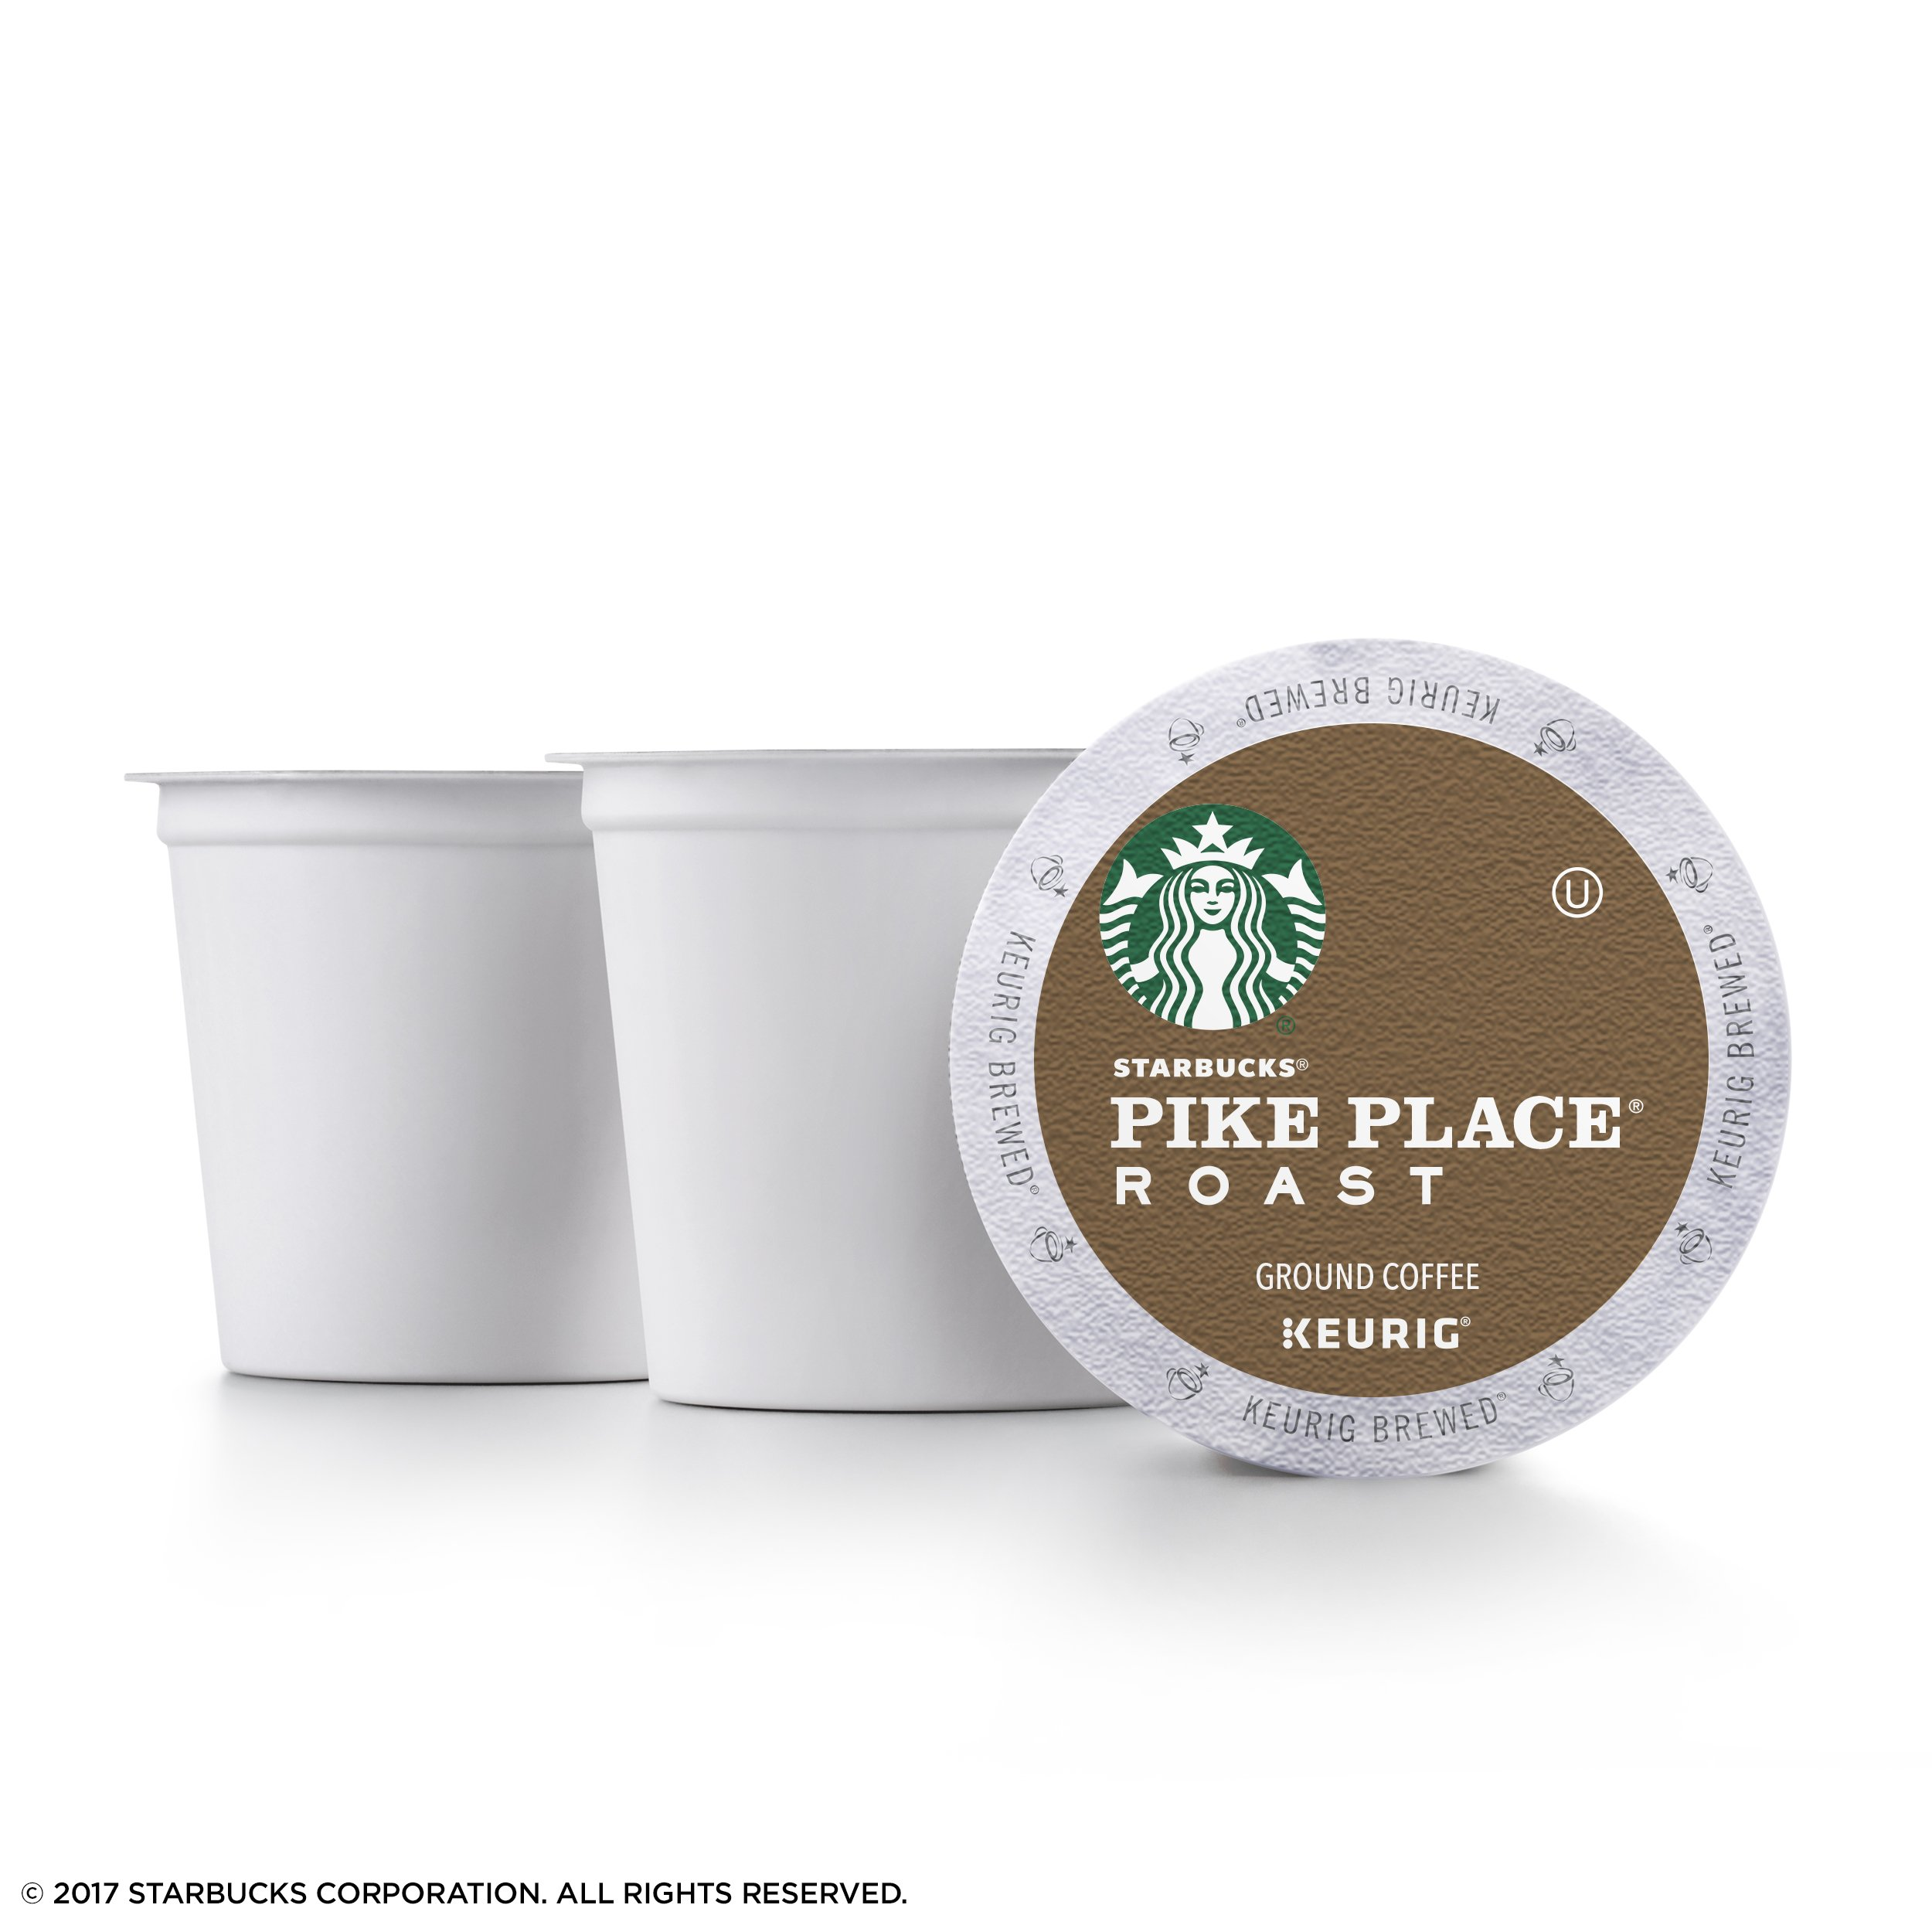 Starbucks Pike Place Roast Medium Roast Single Cup Coffee for Keurig Brewers, 4 boxes of 24 (96 total K-Cup pods) by Starbucks (Image #3)